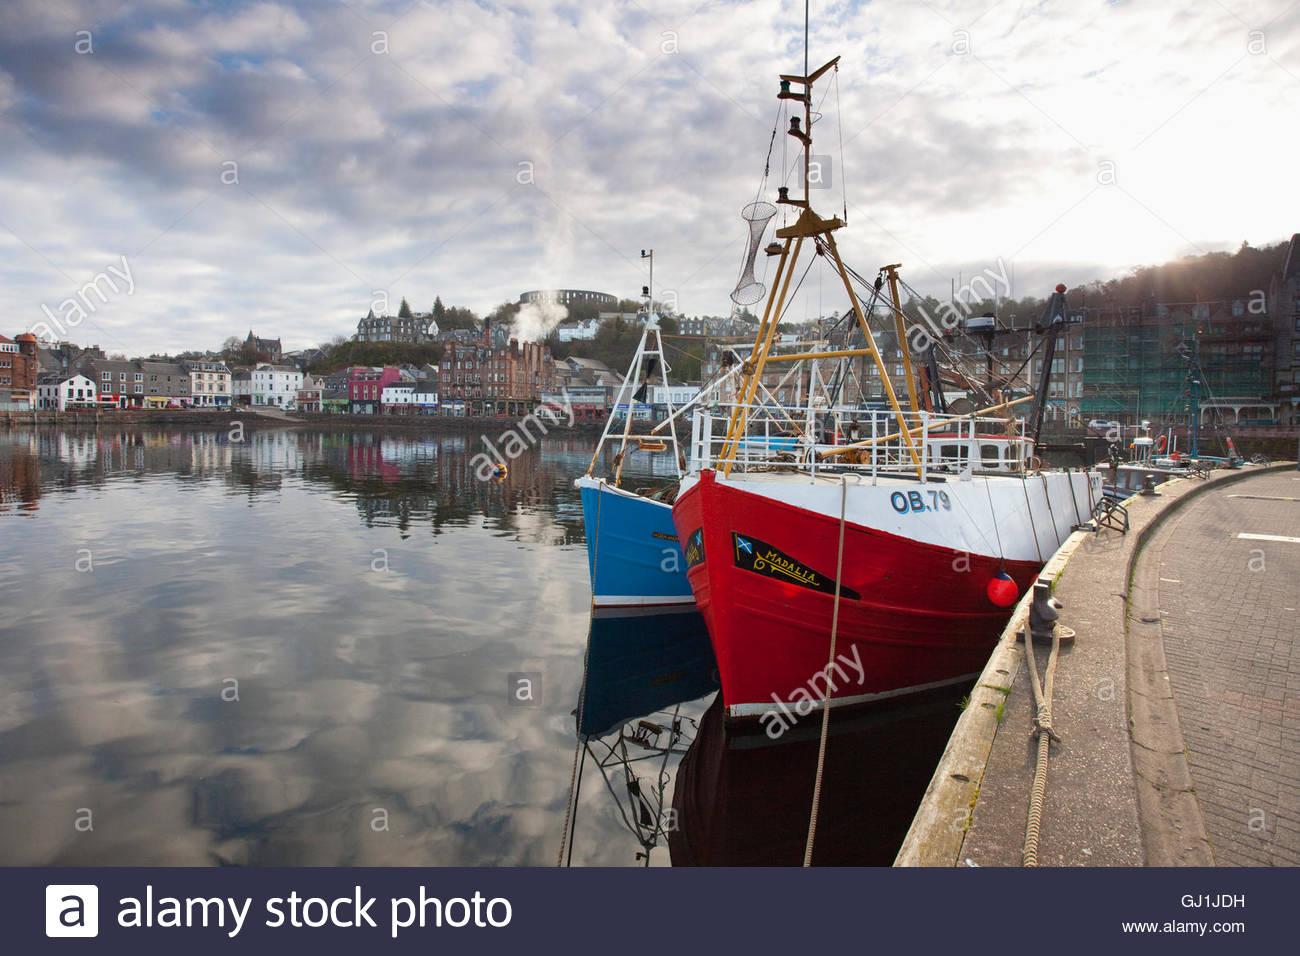 The view across the bay towards McCaig's Tower, Oban, Argyll, Scotland. - Stock Image